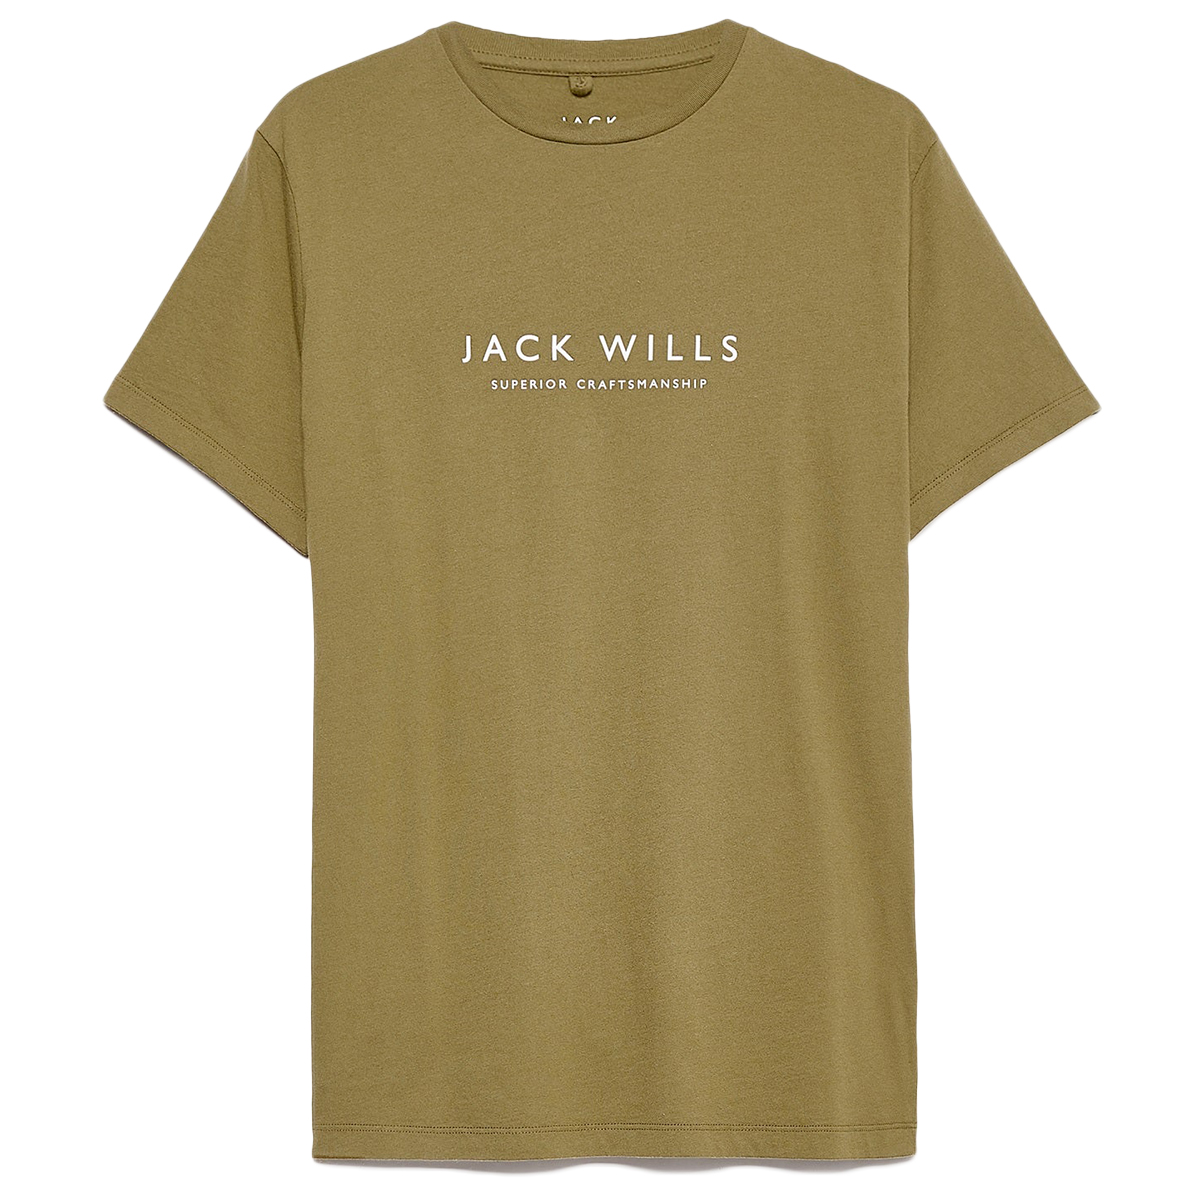 Jack Wills Men's Short-Sleeve Westmore Color-Block Tee - Green, XS